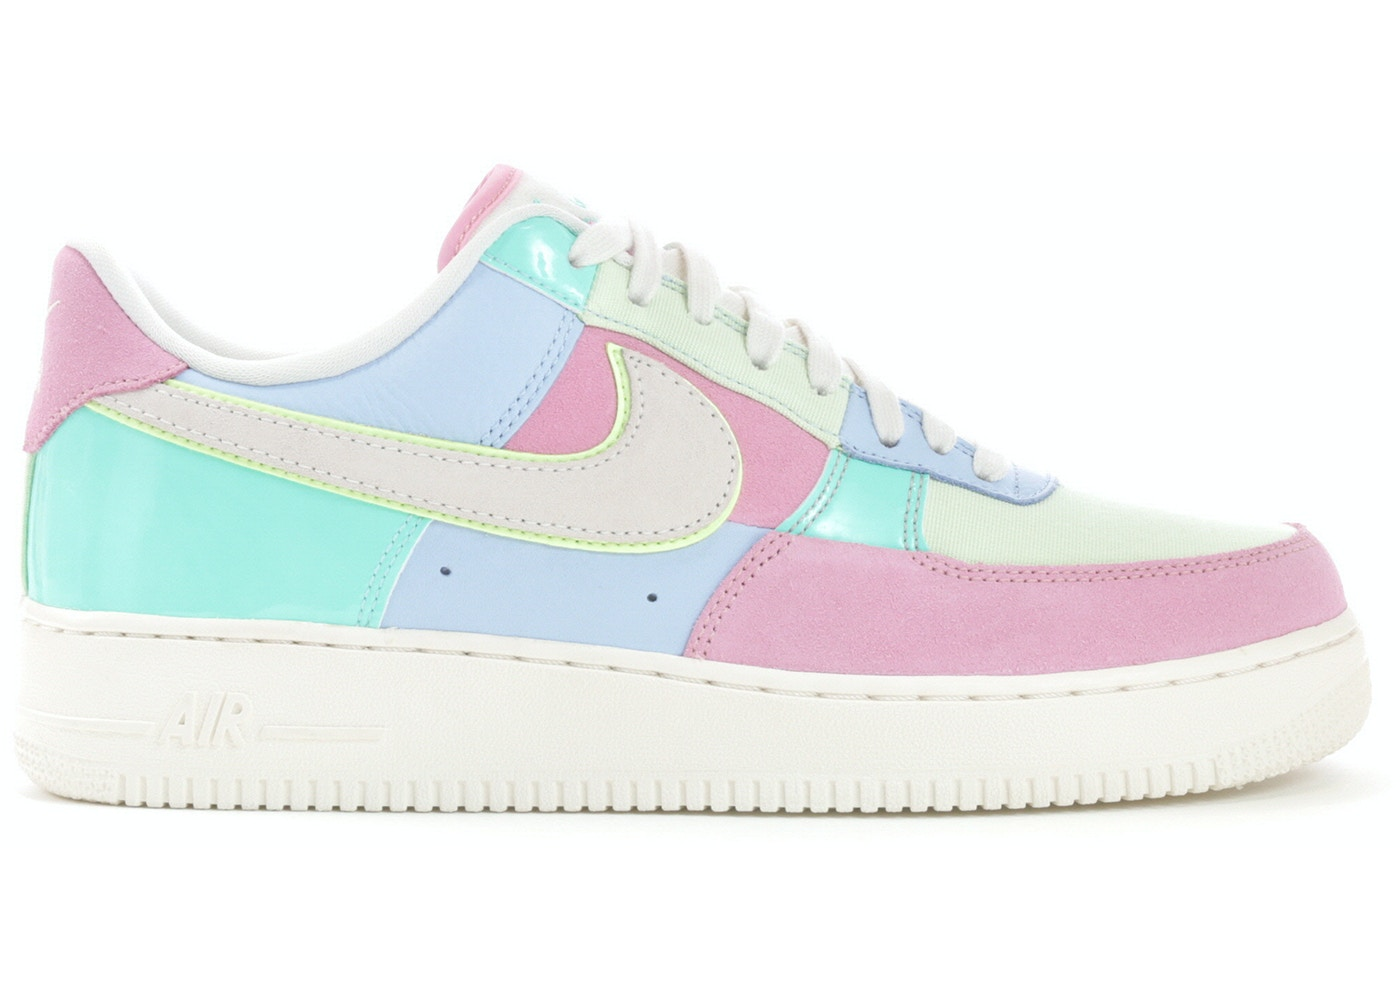 finest selection d6795 7df14 Air Force 1 Low Easter (2018) - AH8462-400